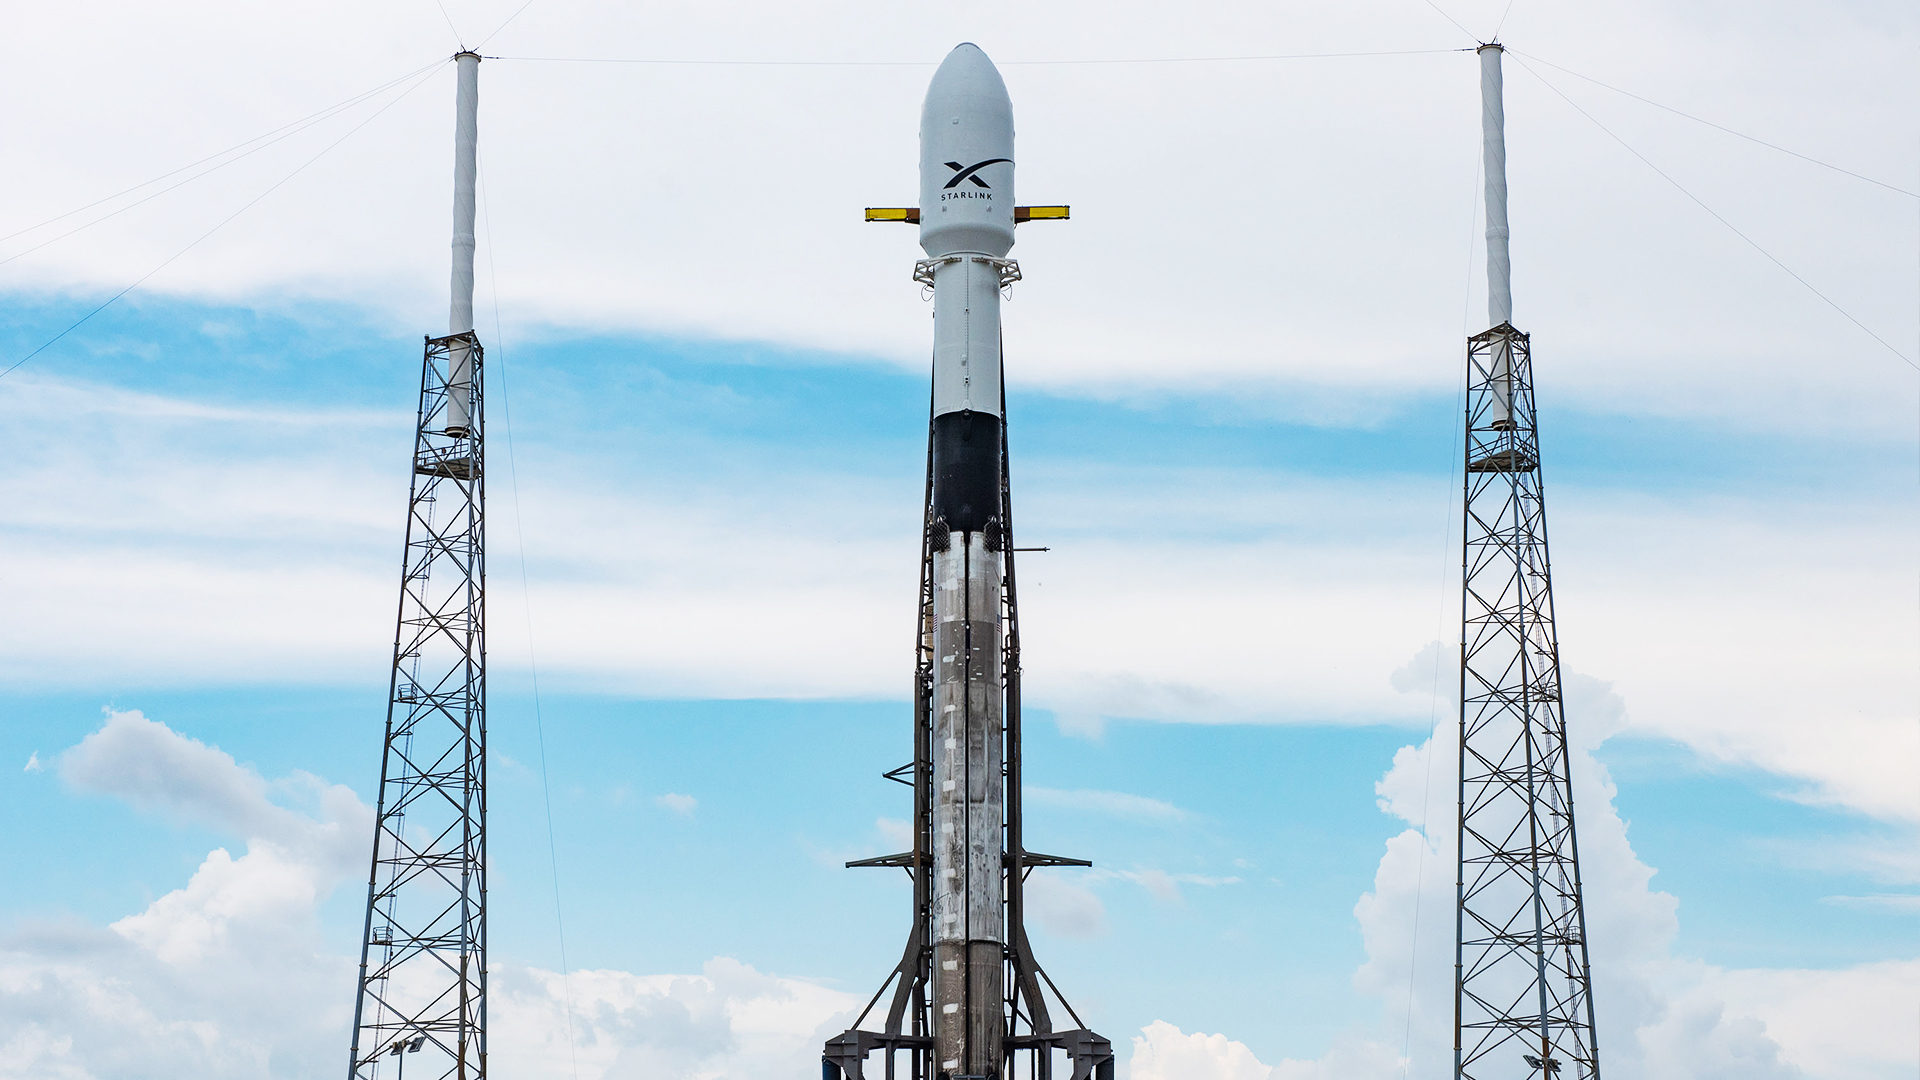 SpaceX executive says Falcon 9 is waiting for customer satellites for the first time ever